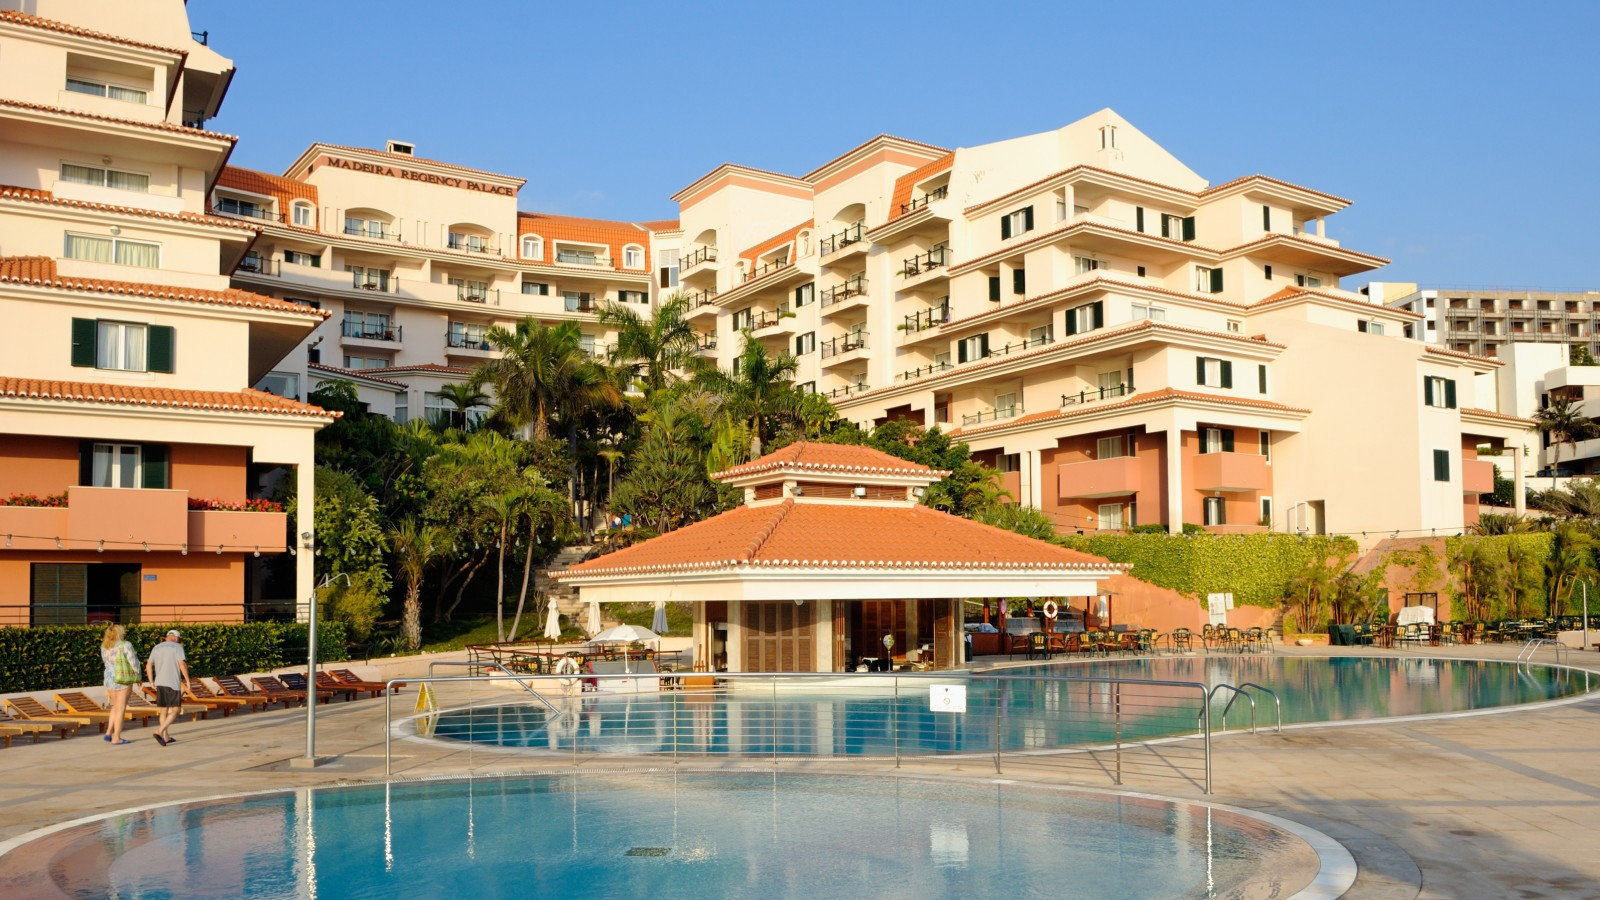 Madeira regency palace hotel funchal for Tropical hotel ostuni